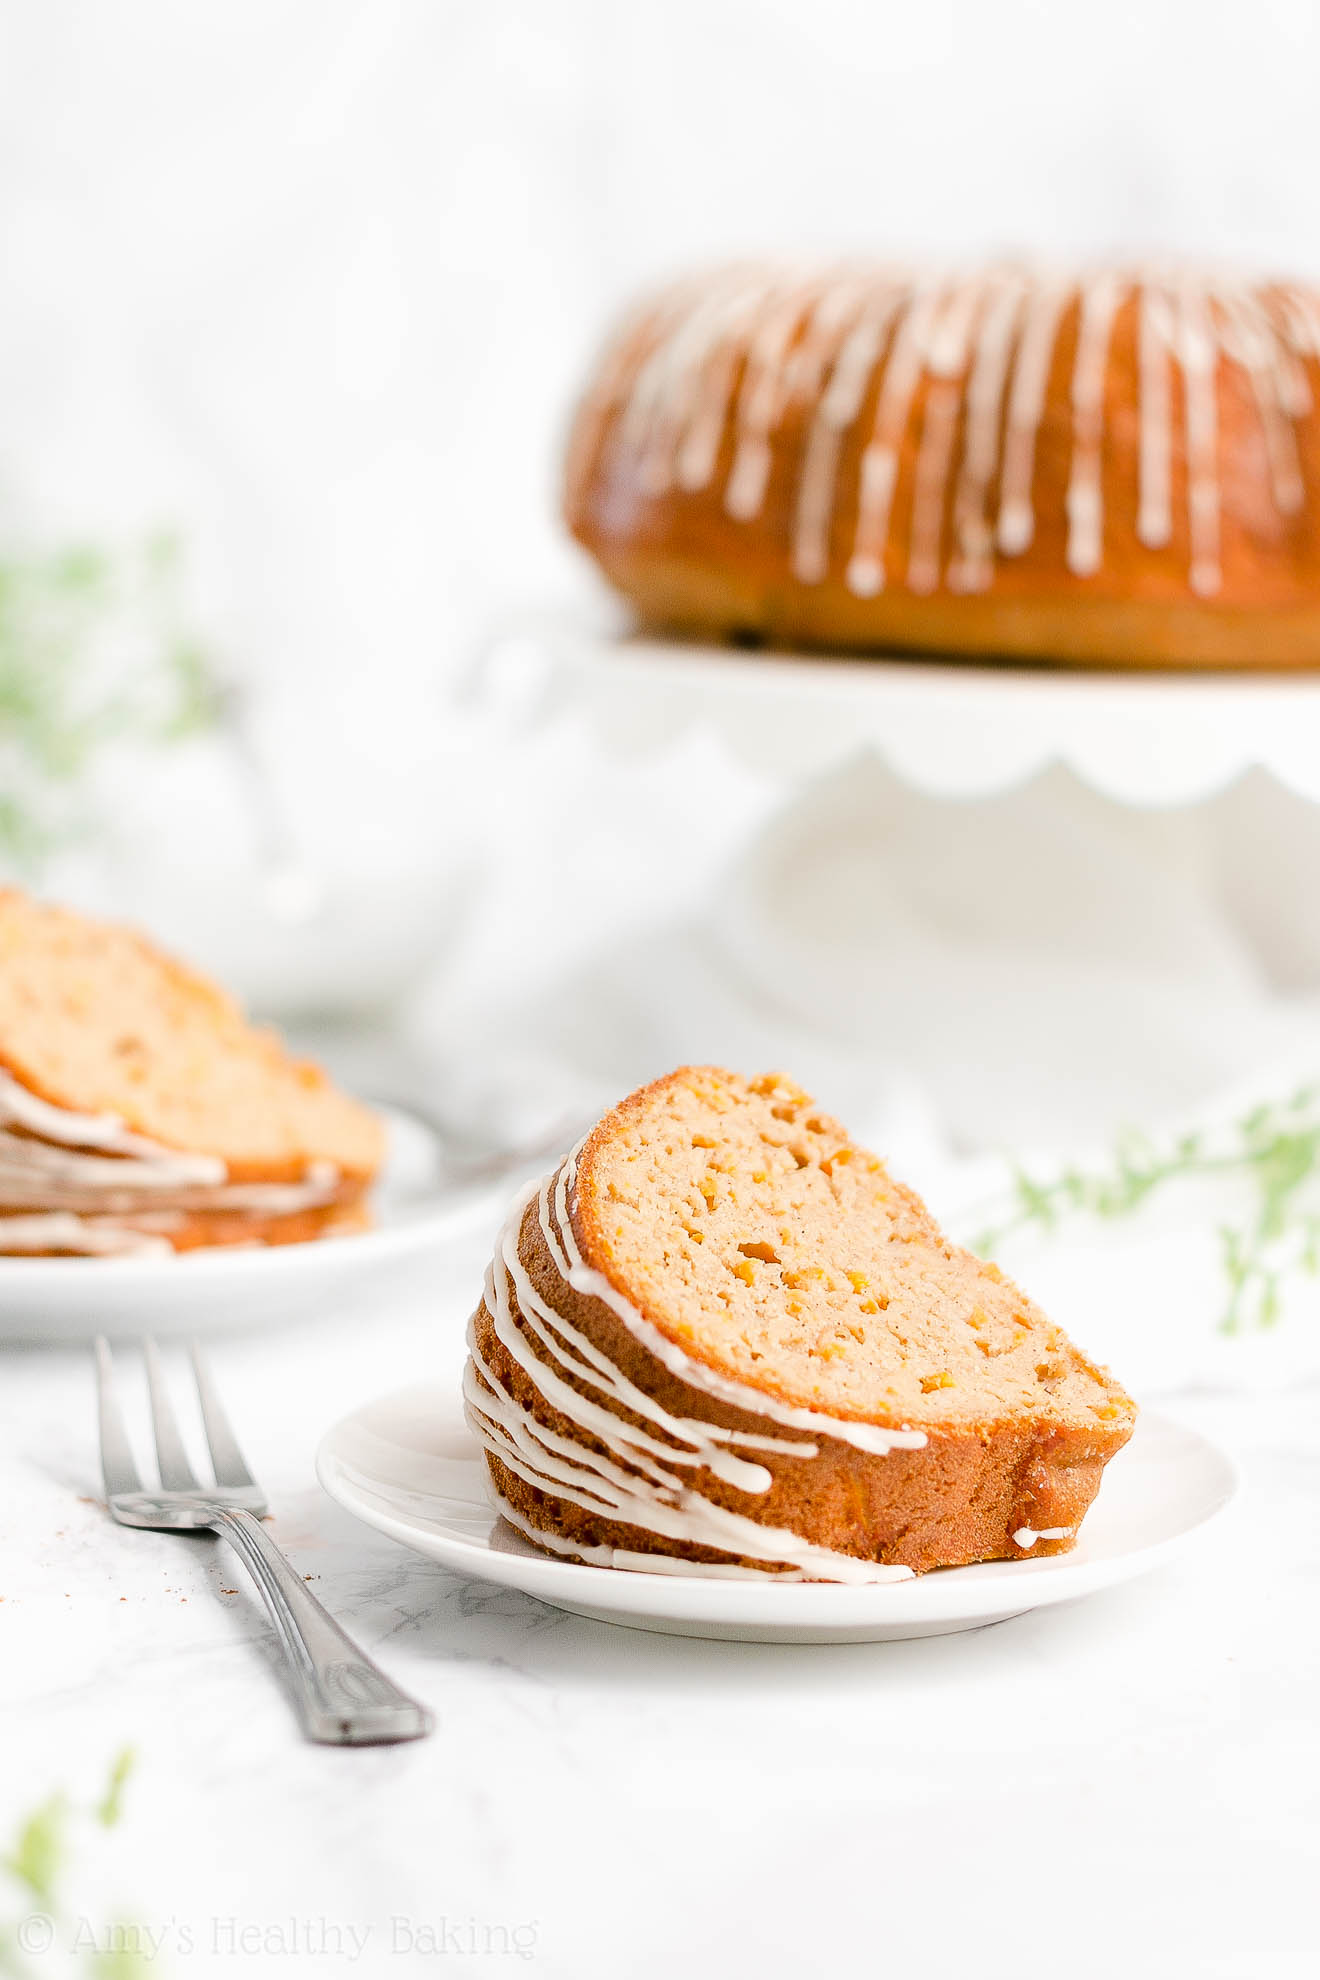 Best Easy Healthy Low Fat Low Sugar Super Moist Carrot Bundt Cake